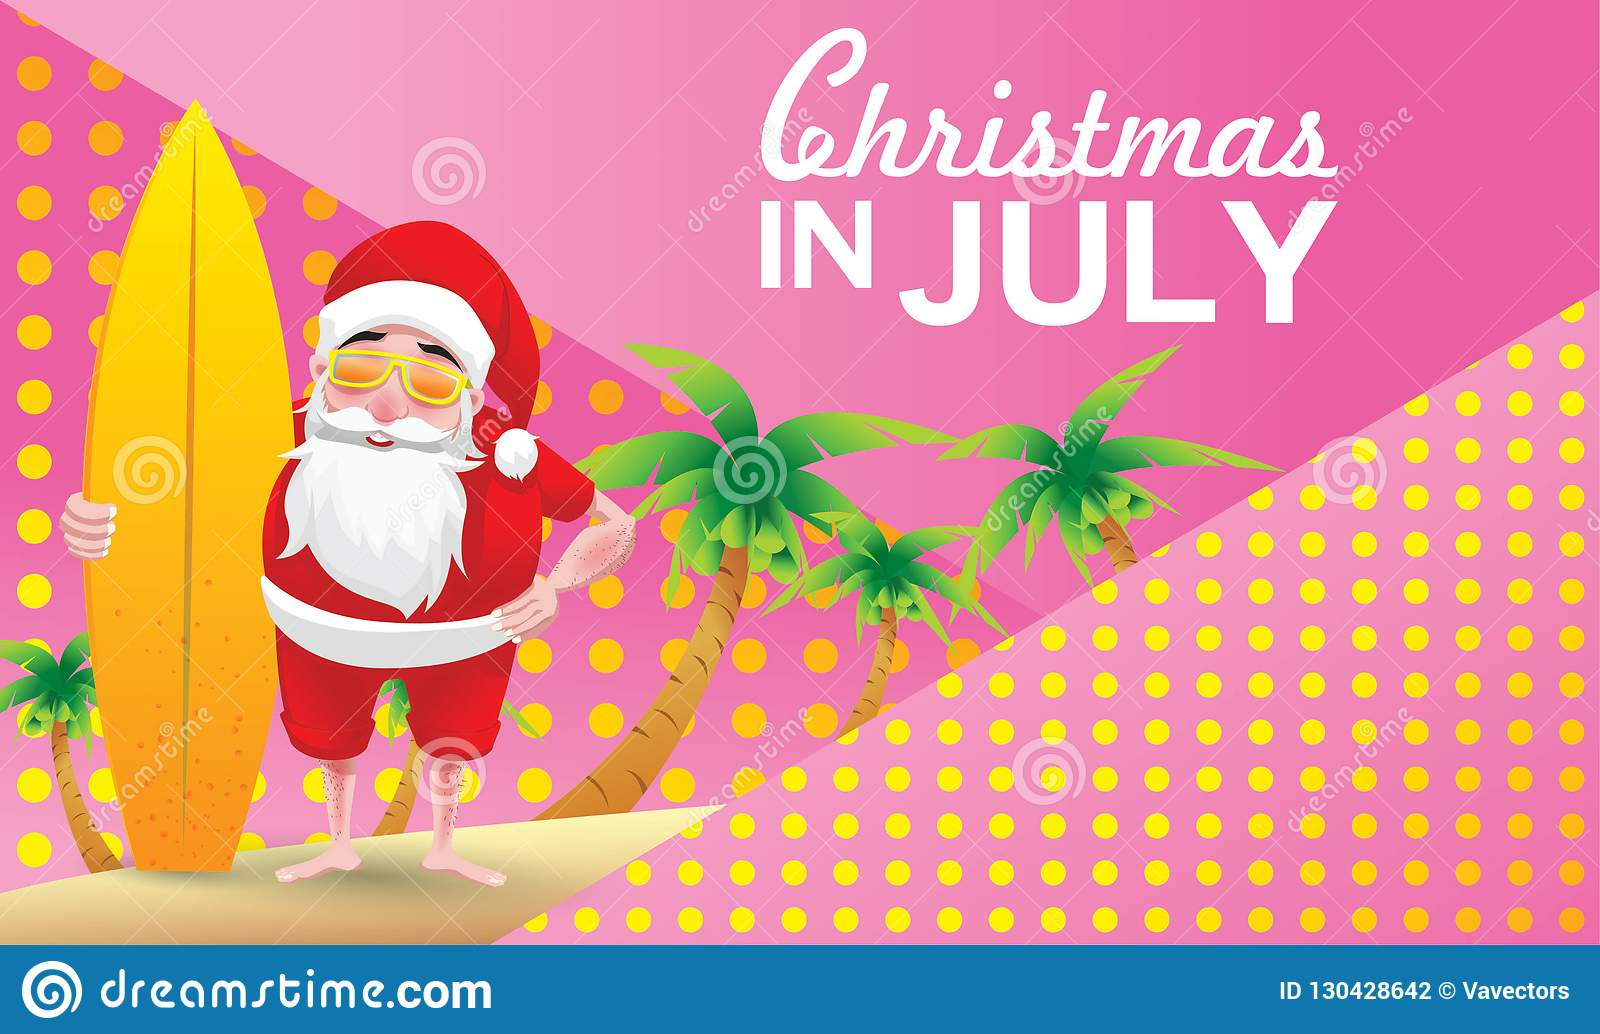 Happy Christmas In July Images.Christmas In July Stock Illustration Illustration Of Merry